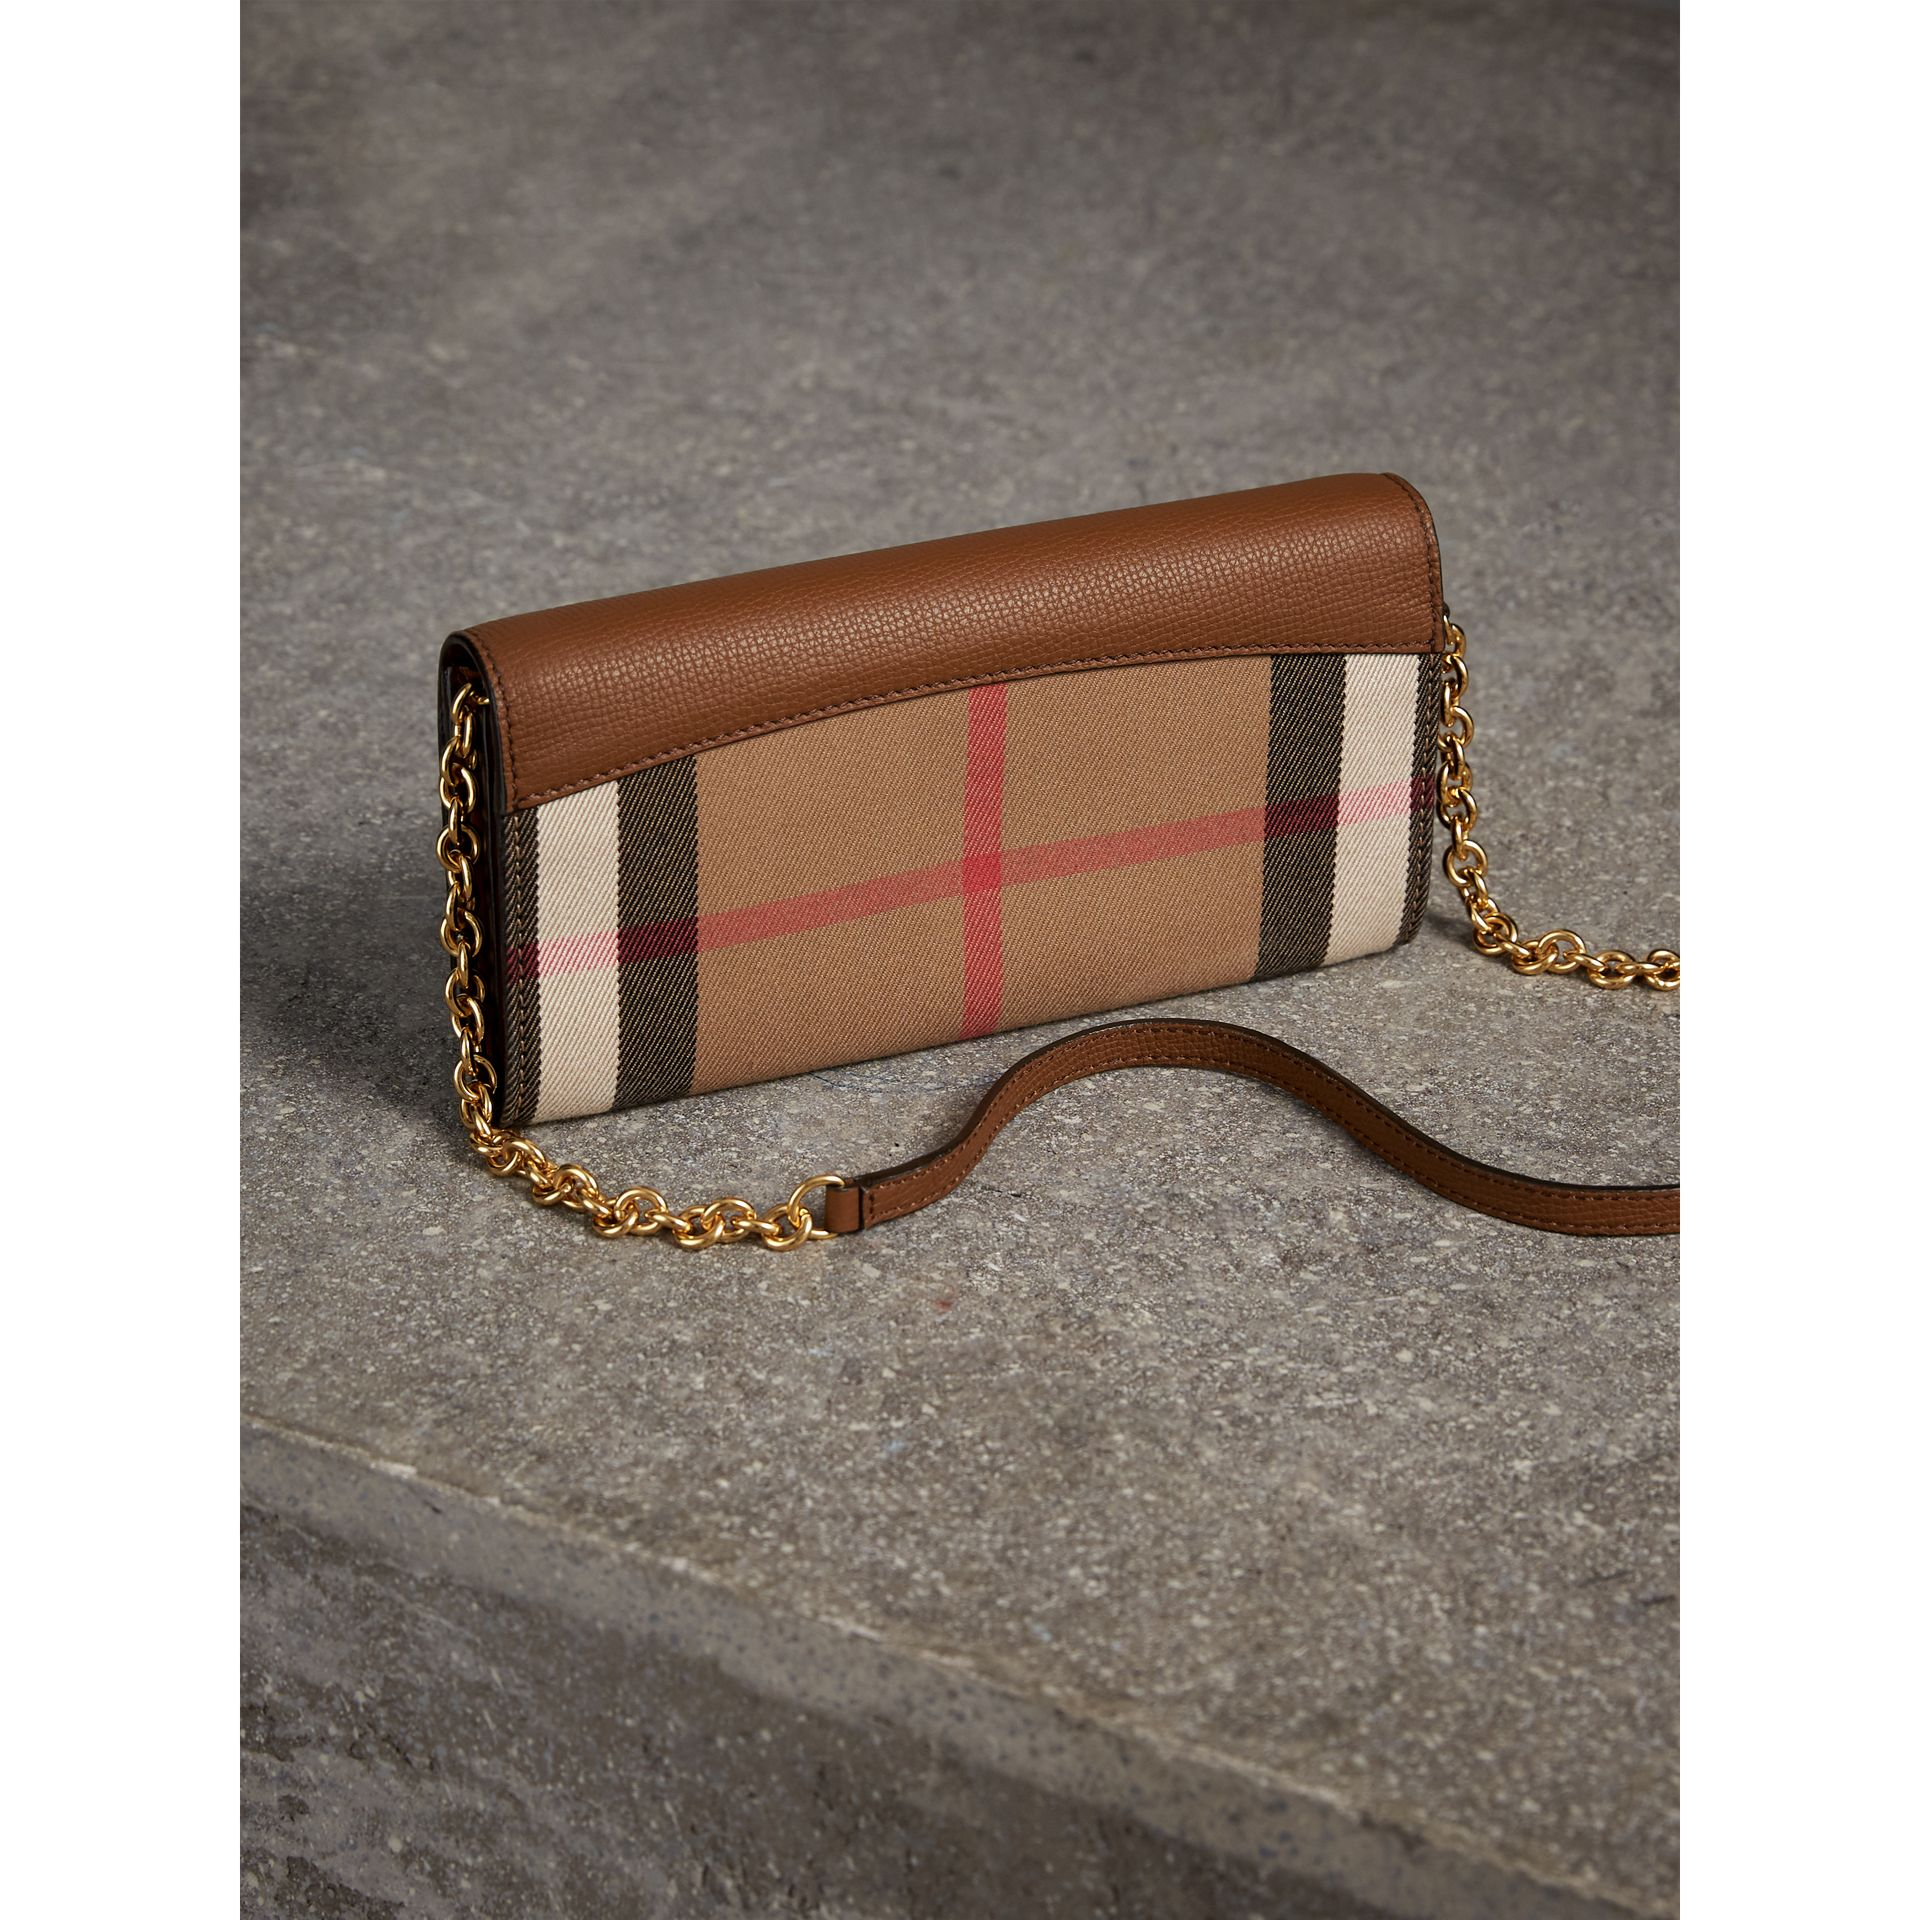 House Check and Leather Wallet with Chain in Tan - Women | Burberry - gallery image 4